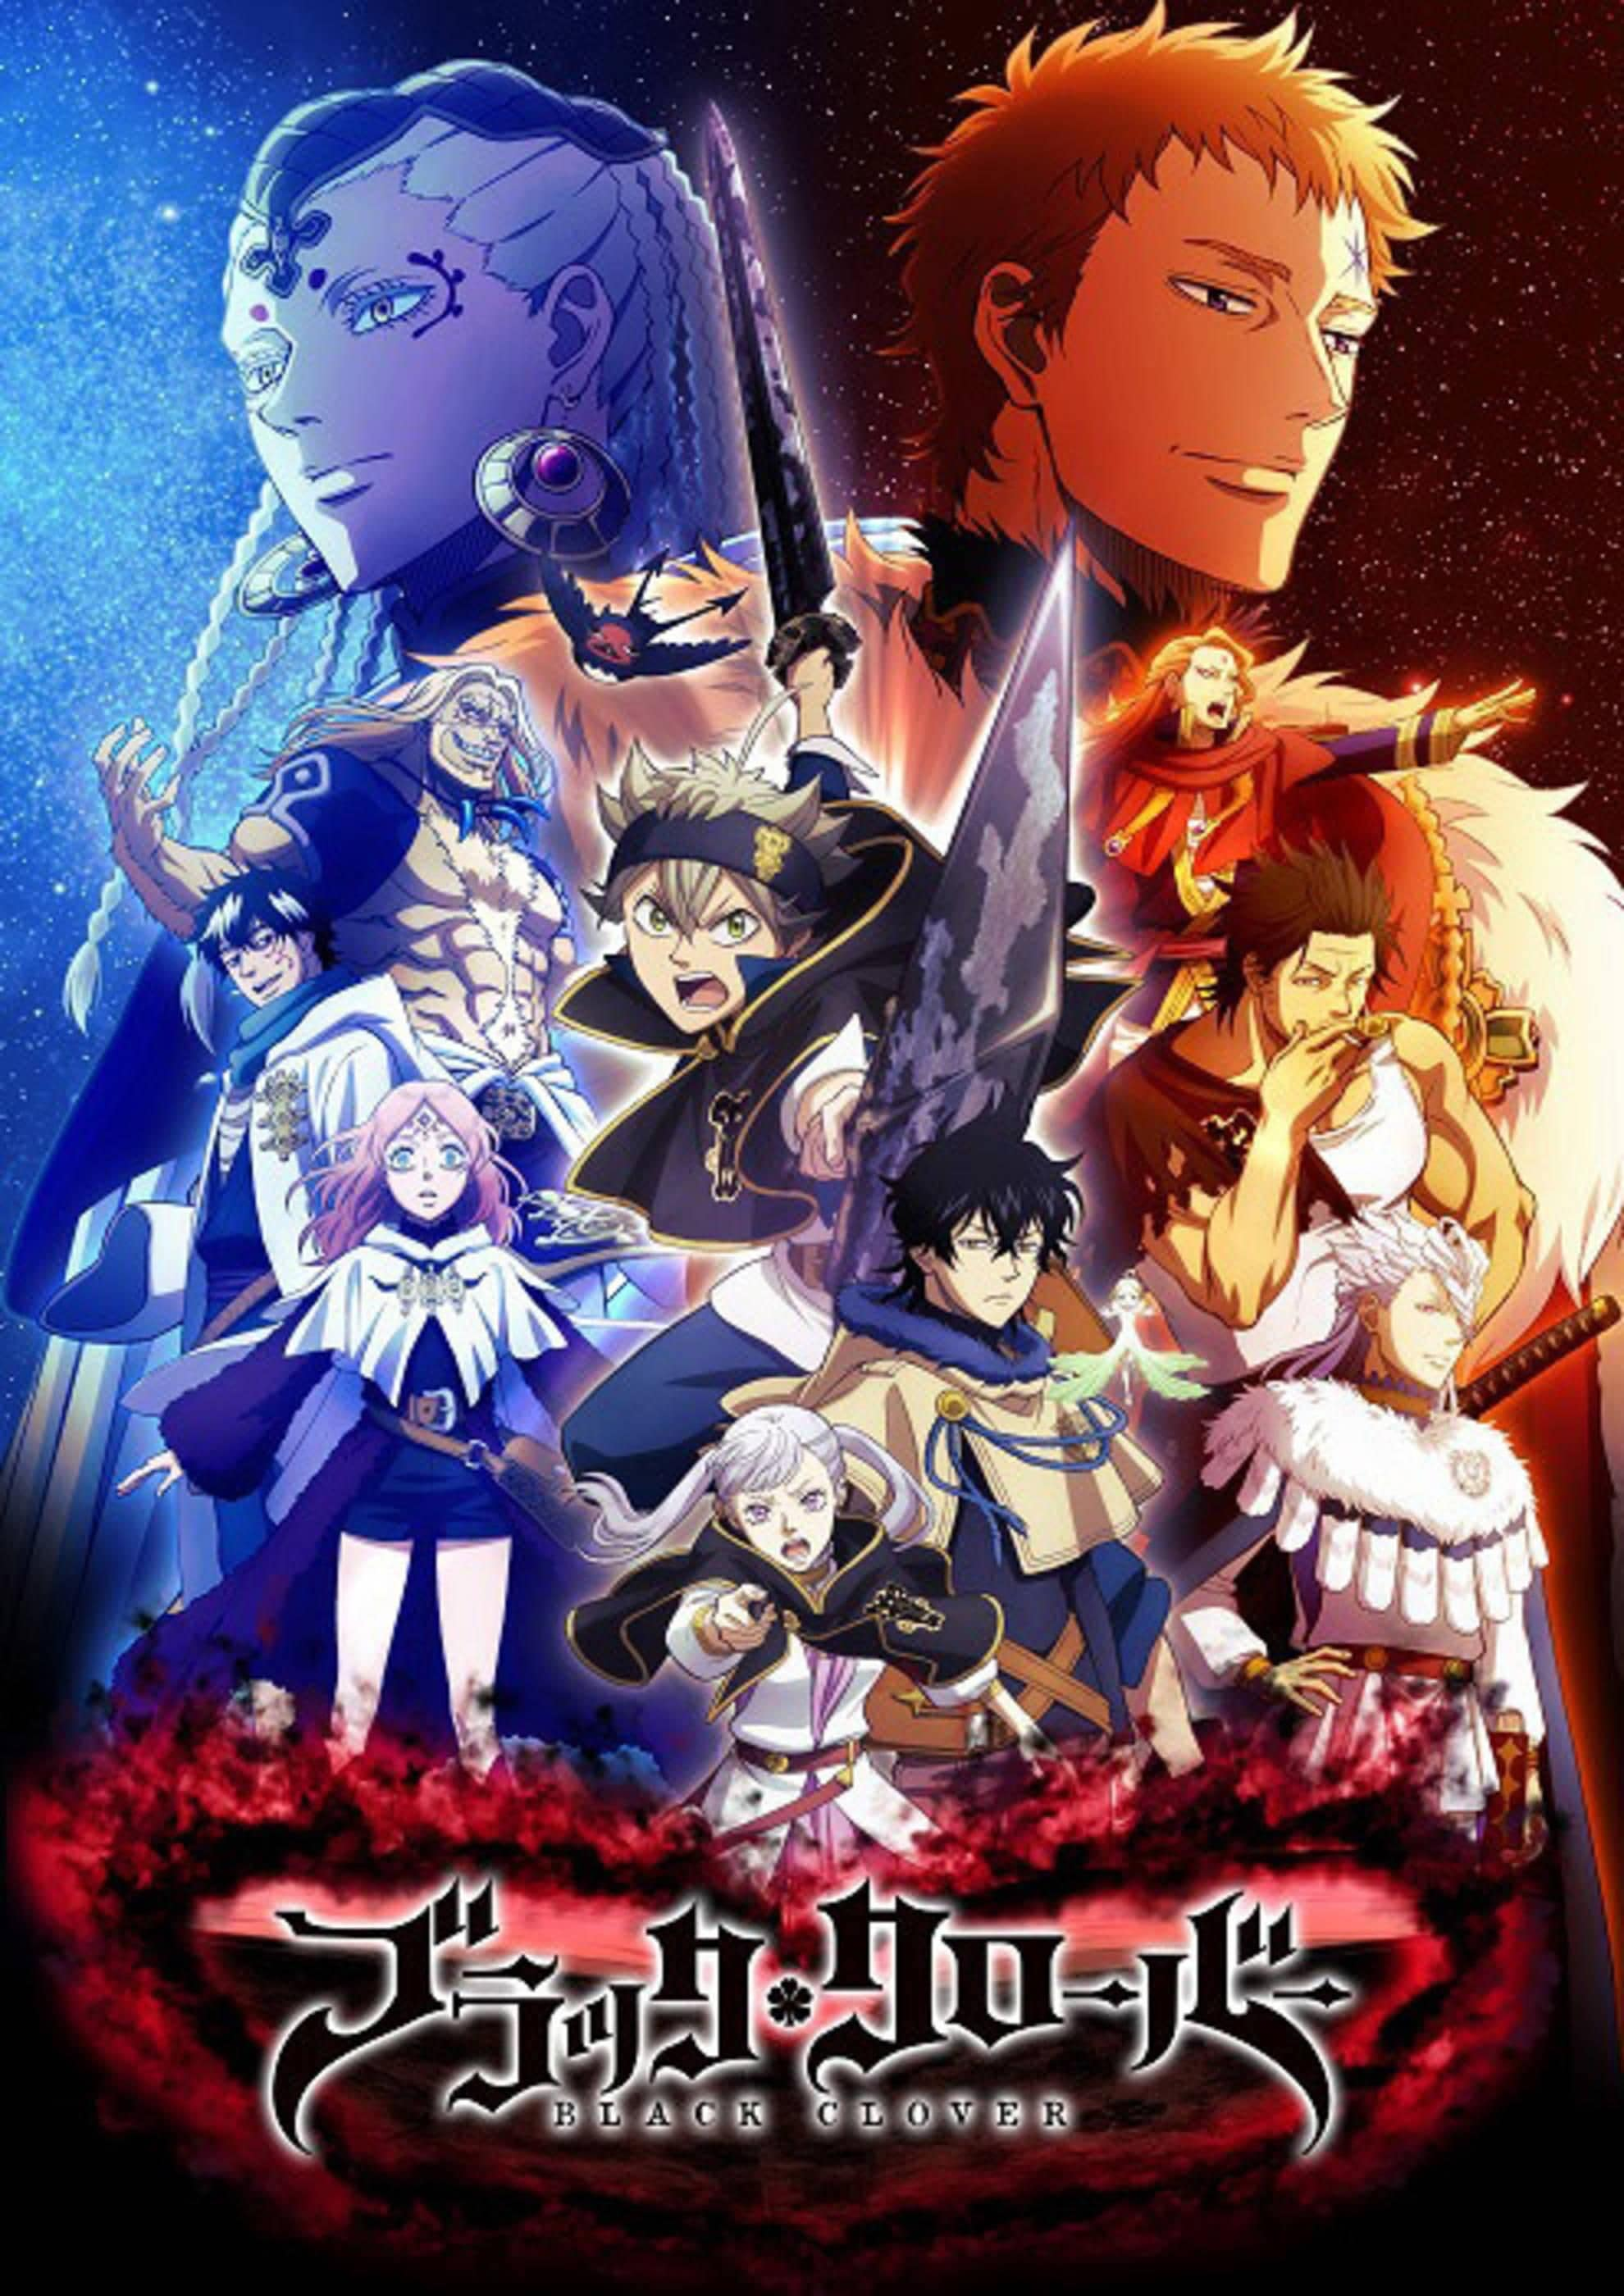 Black Clover Wallpapers iPhone - KoLPaPer - Awesome Free ...